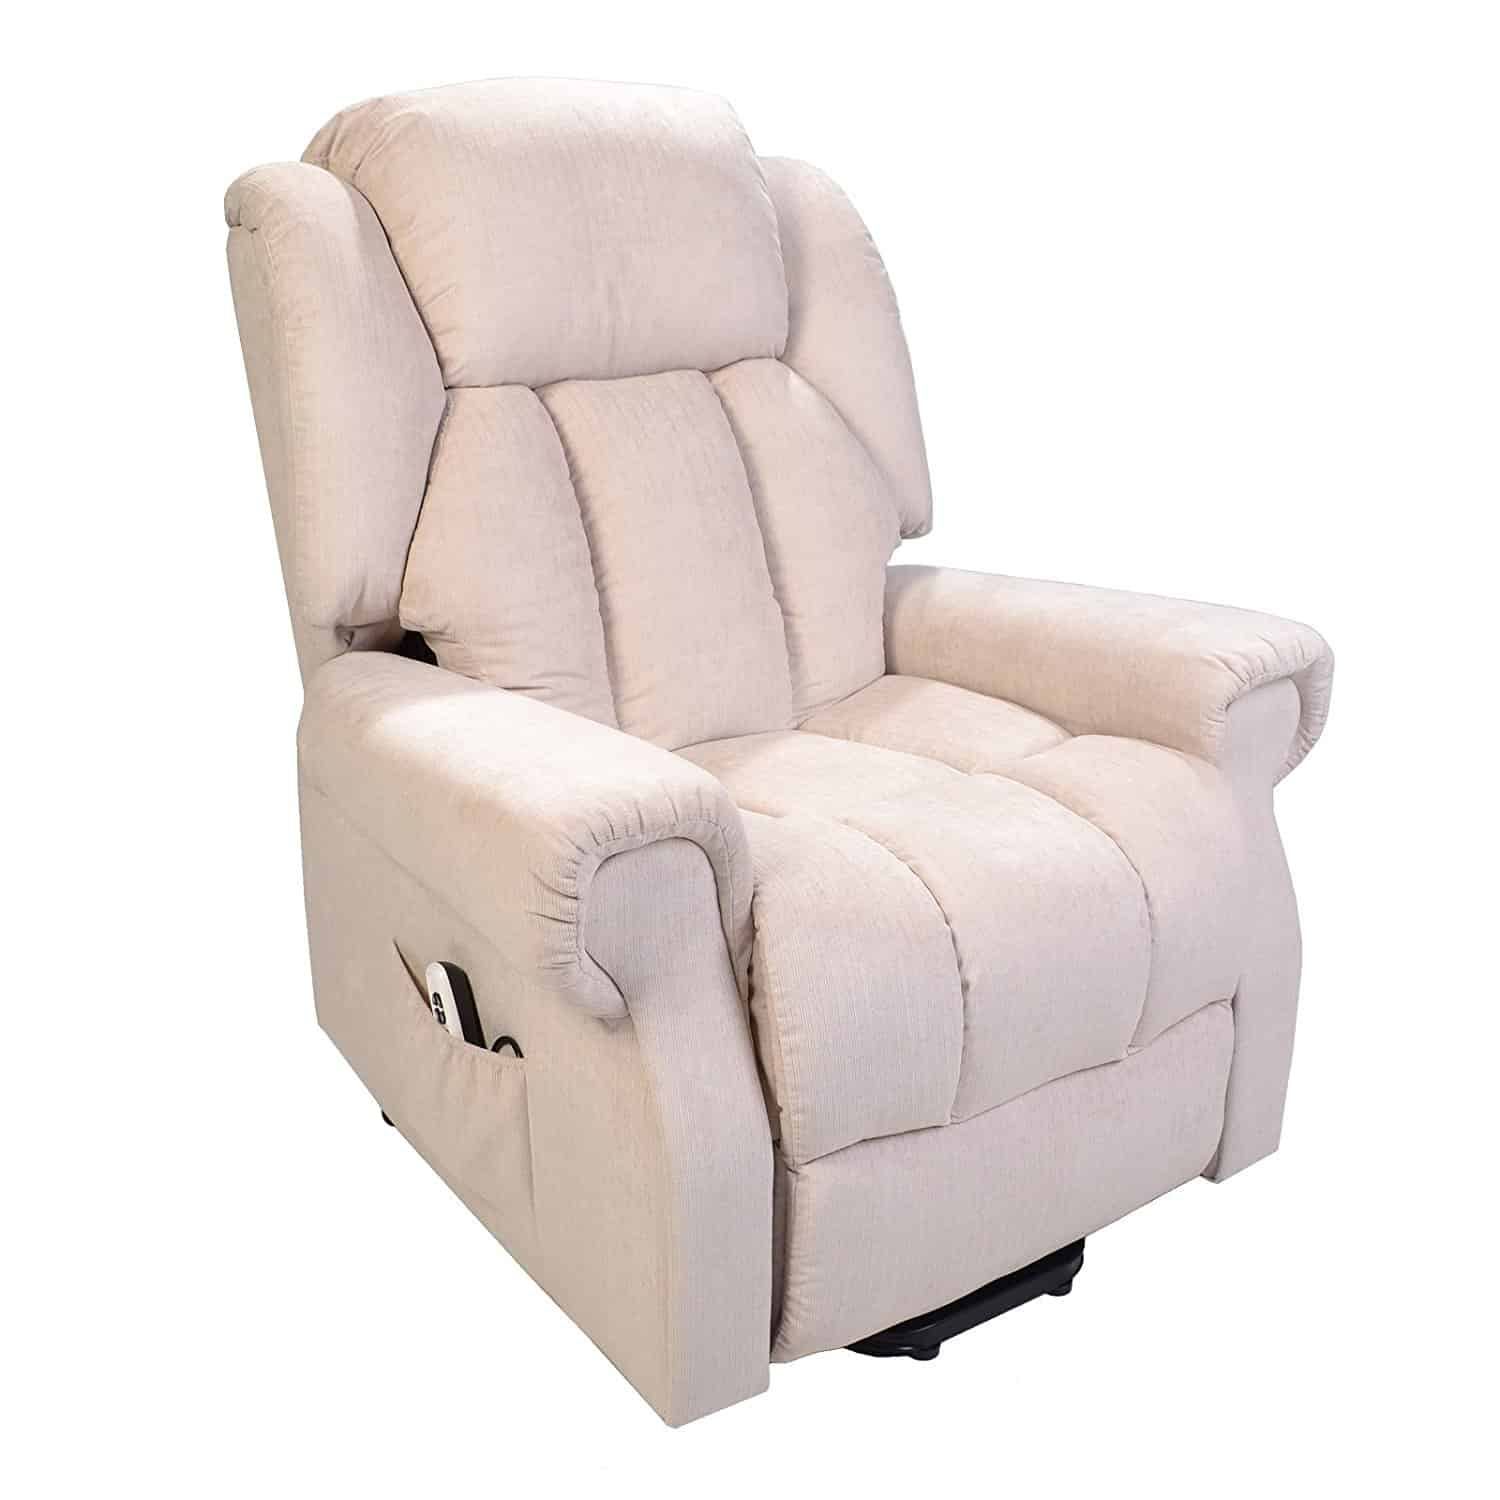 How to choose the right orthopedic armchair